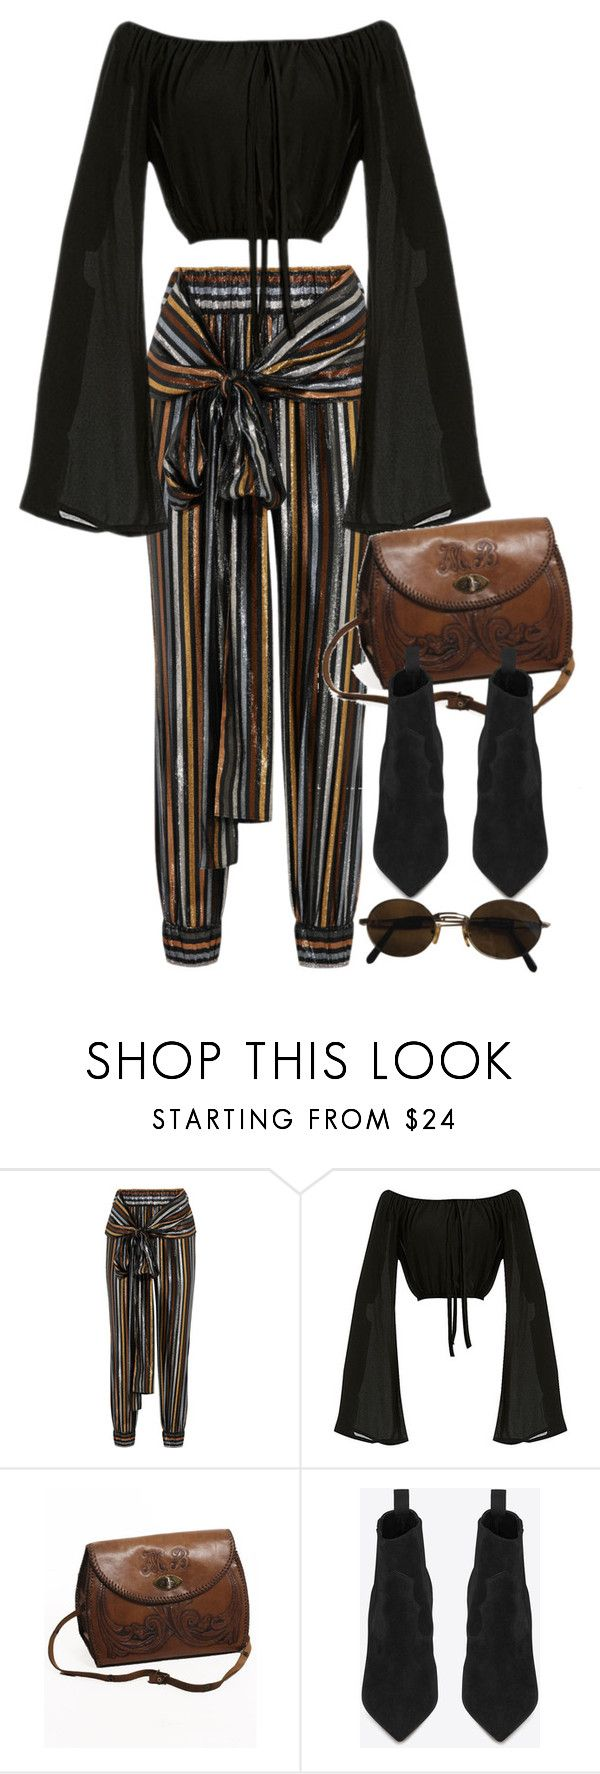 """""""Untitled #10645"""" by nikka-phillips ❤ liked on Polyvore featuring Haney, INDIE HAIR, Yves Saint Laurent and Moschino"""